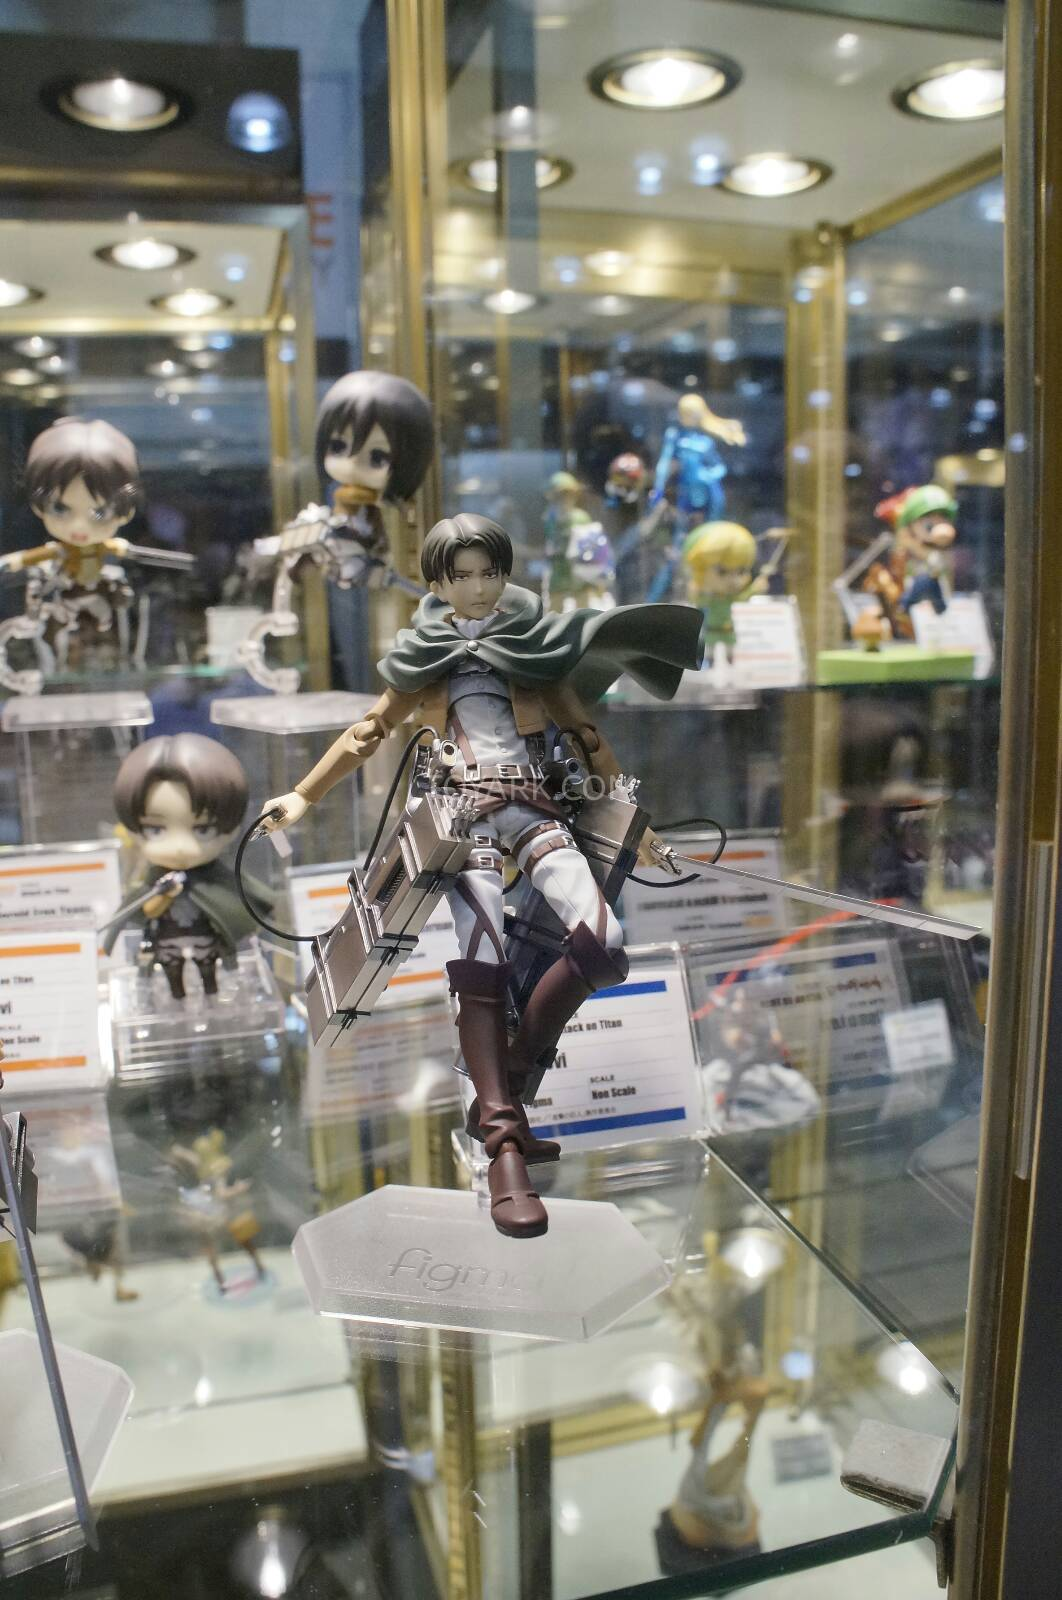 [EVENTO] Toy Fair 2014 - Good Smile Company / Max Factory / Phat Company / FREEing Toy-Fair-2014-Good-Smile-and-Max-Factory-Display-020